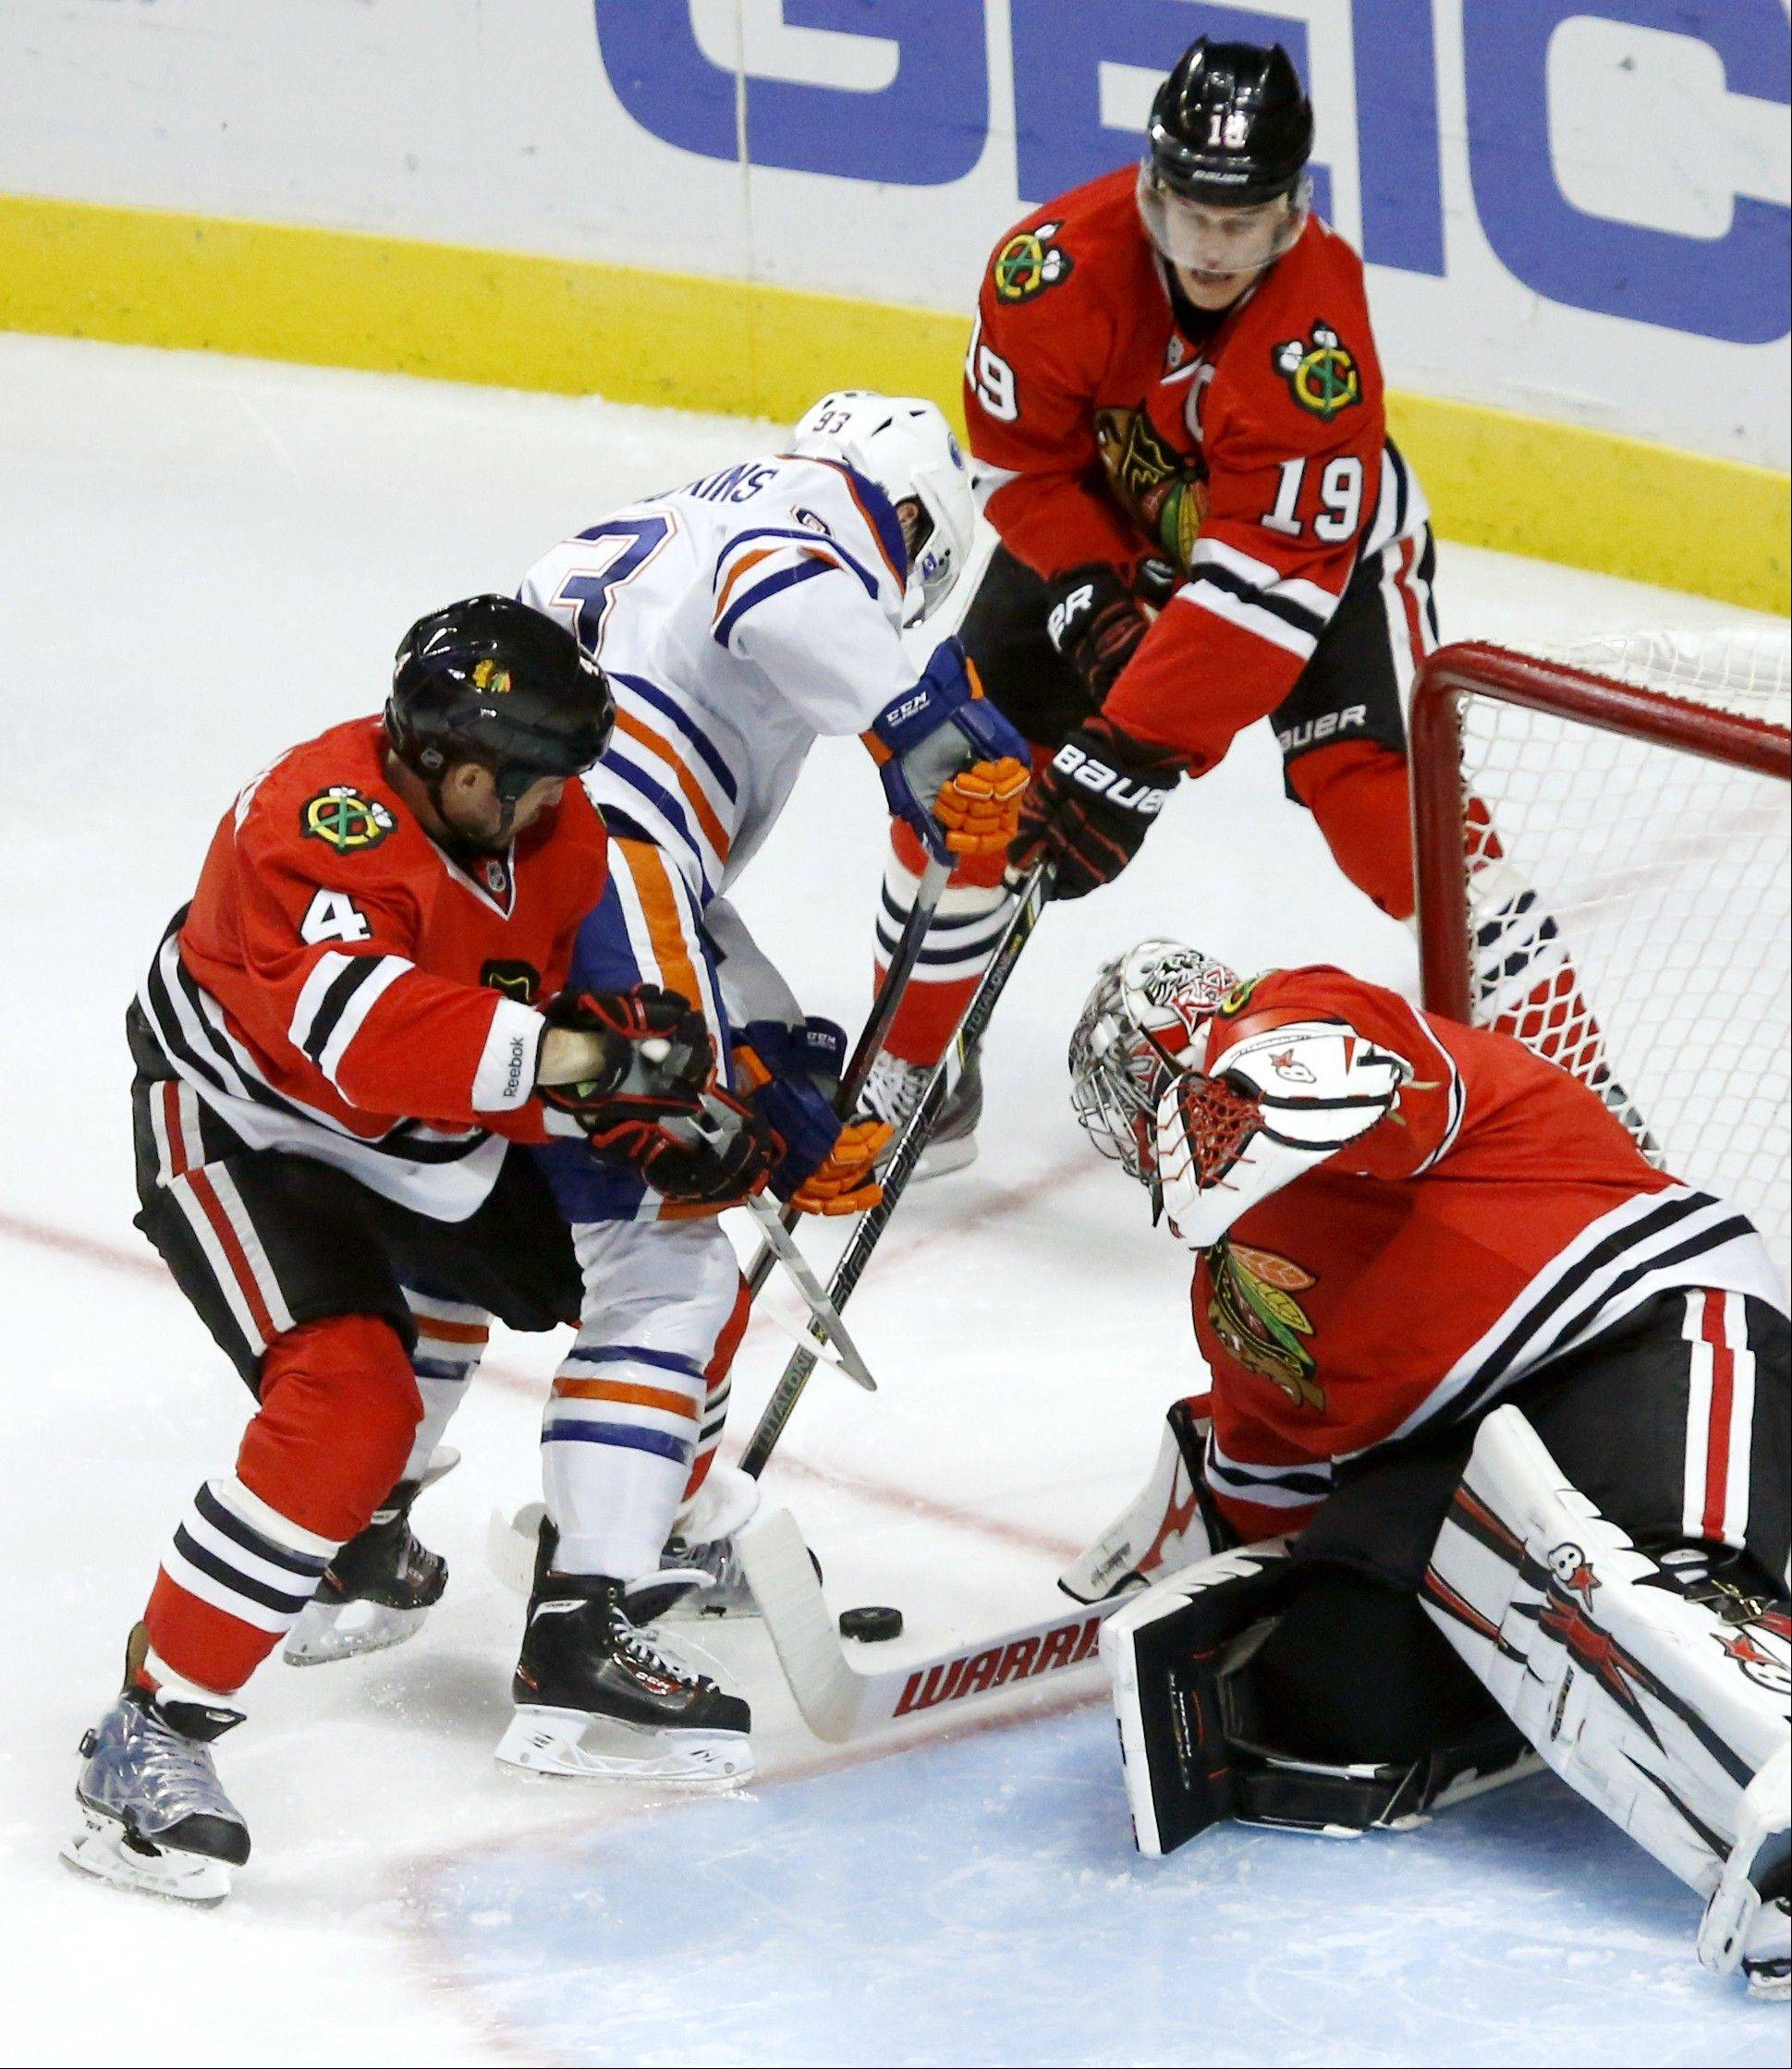 Blackhawks' defensive approach impressive